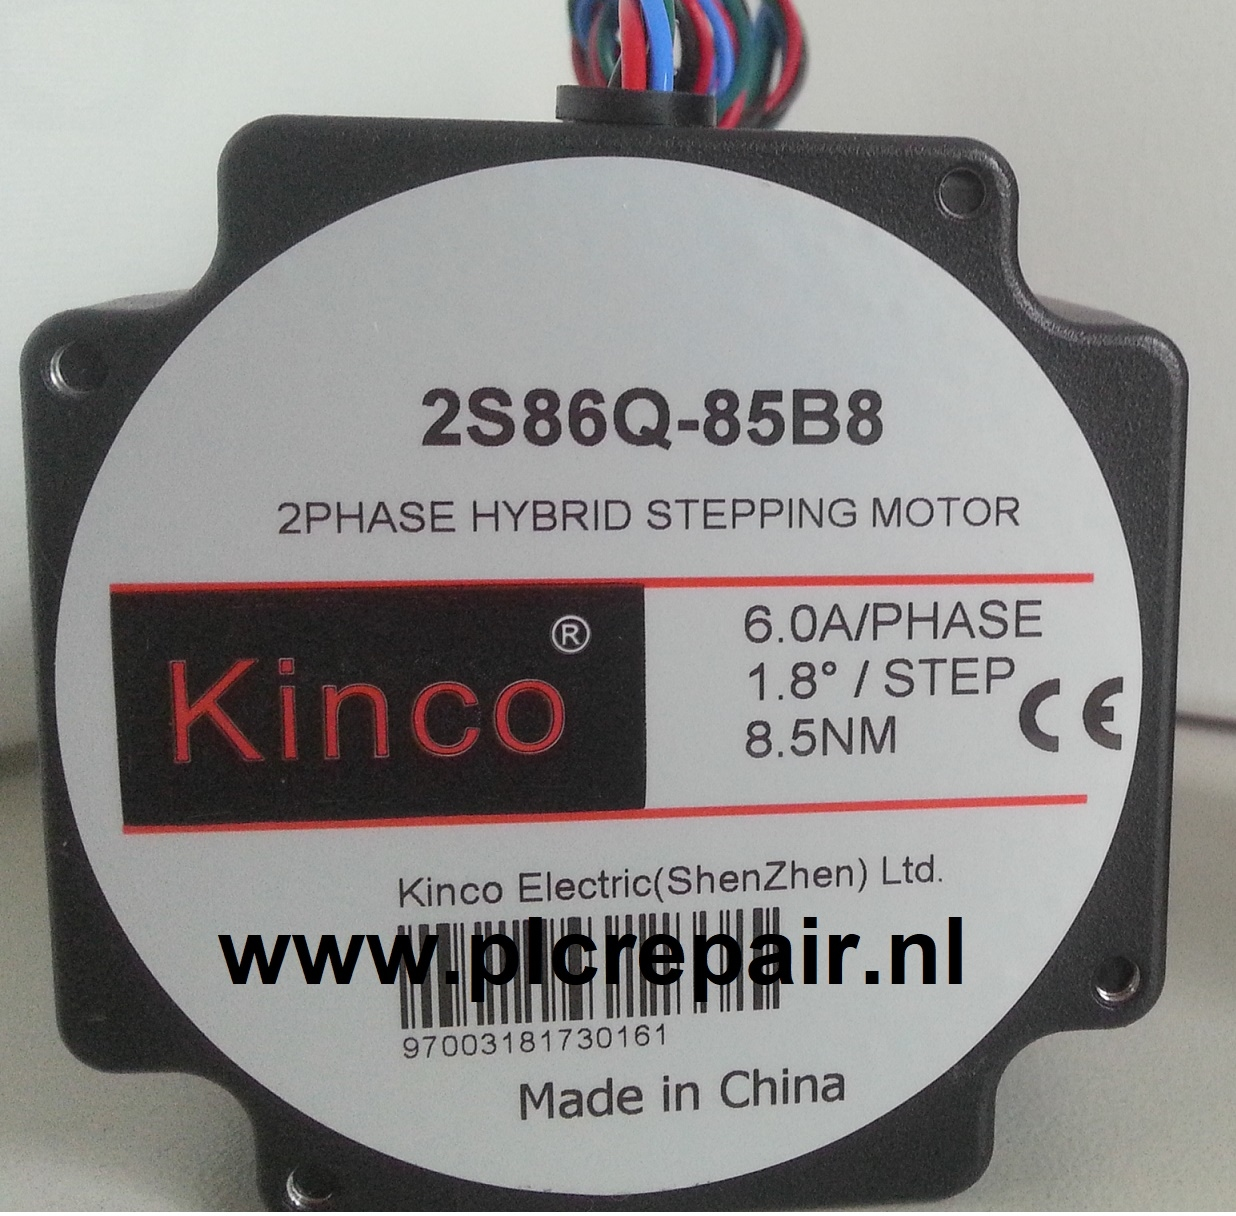 2S86Q-85B8 KInco Stappenmotor 8.5Nm